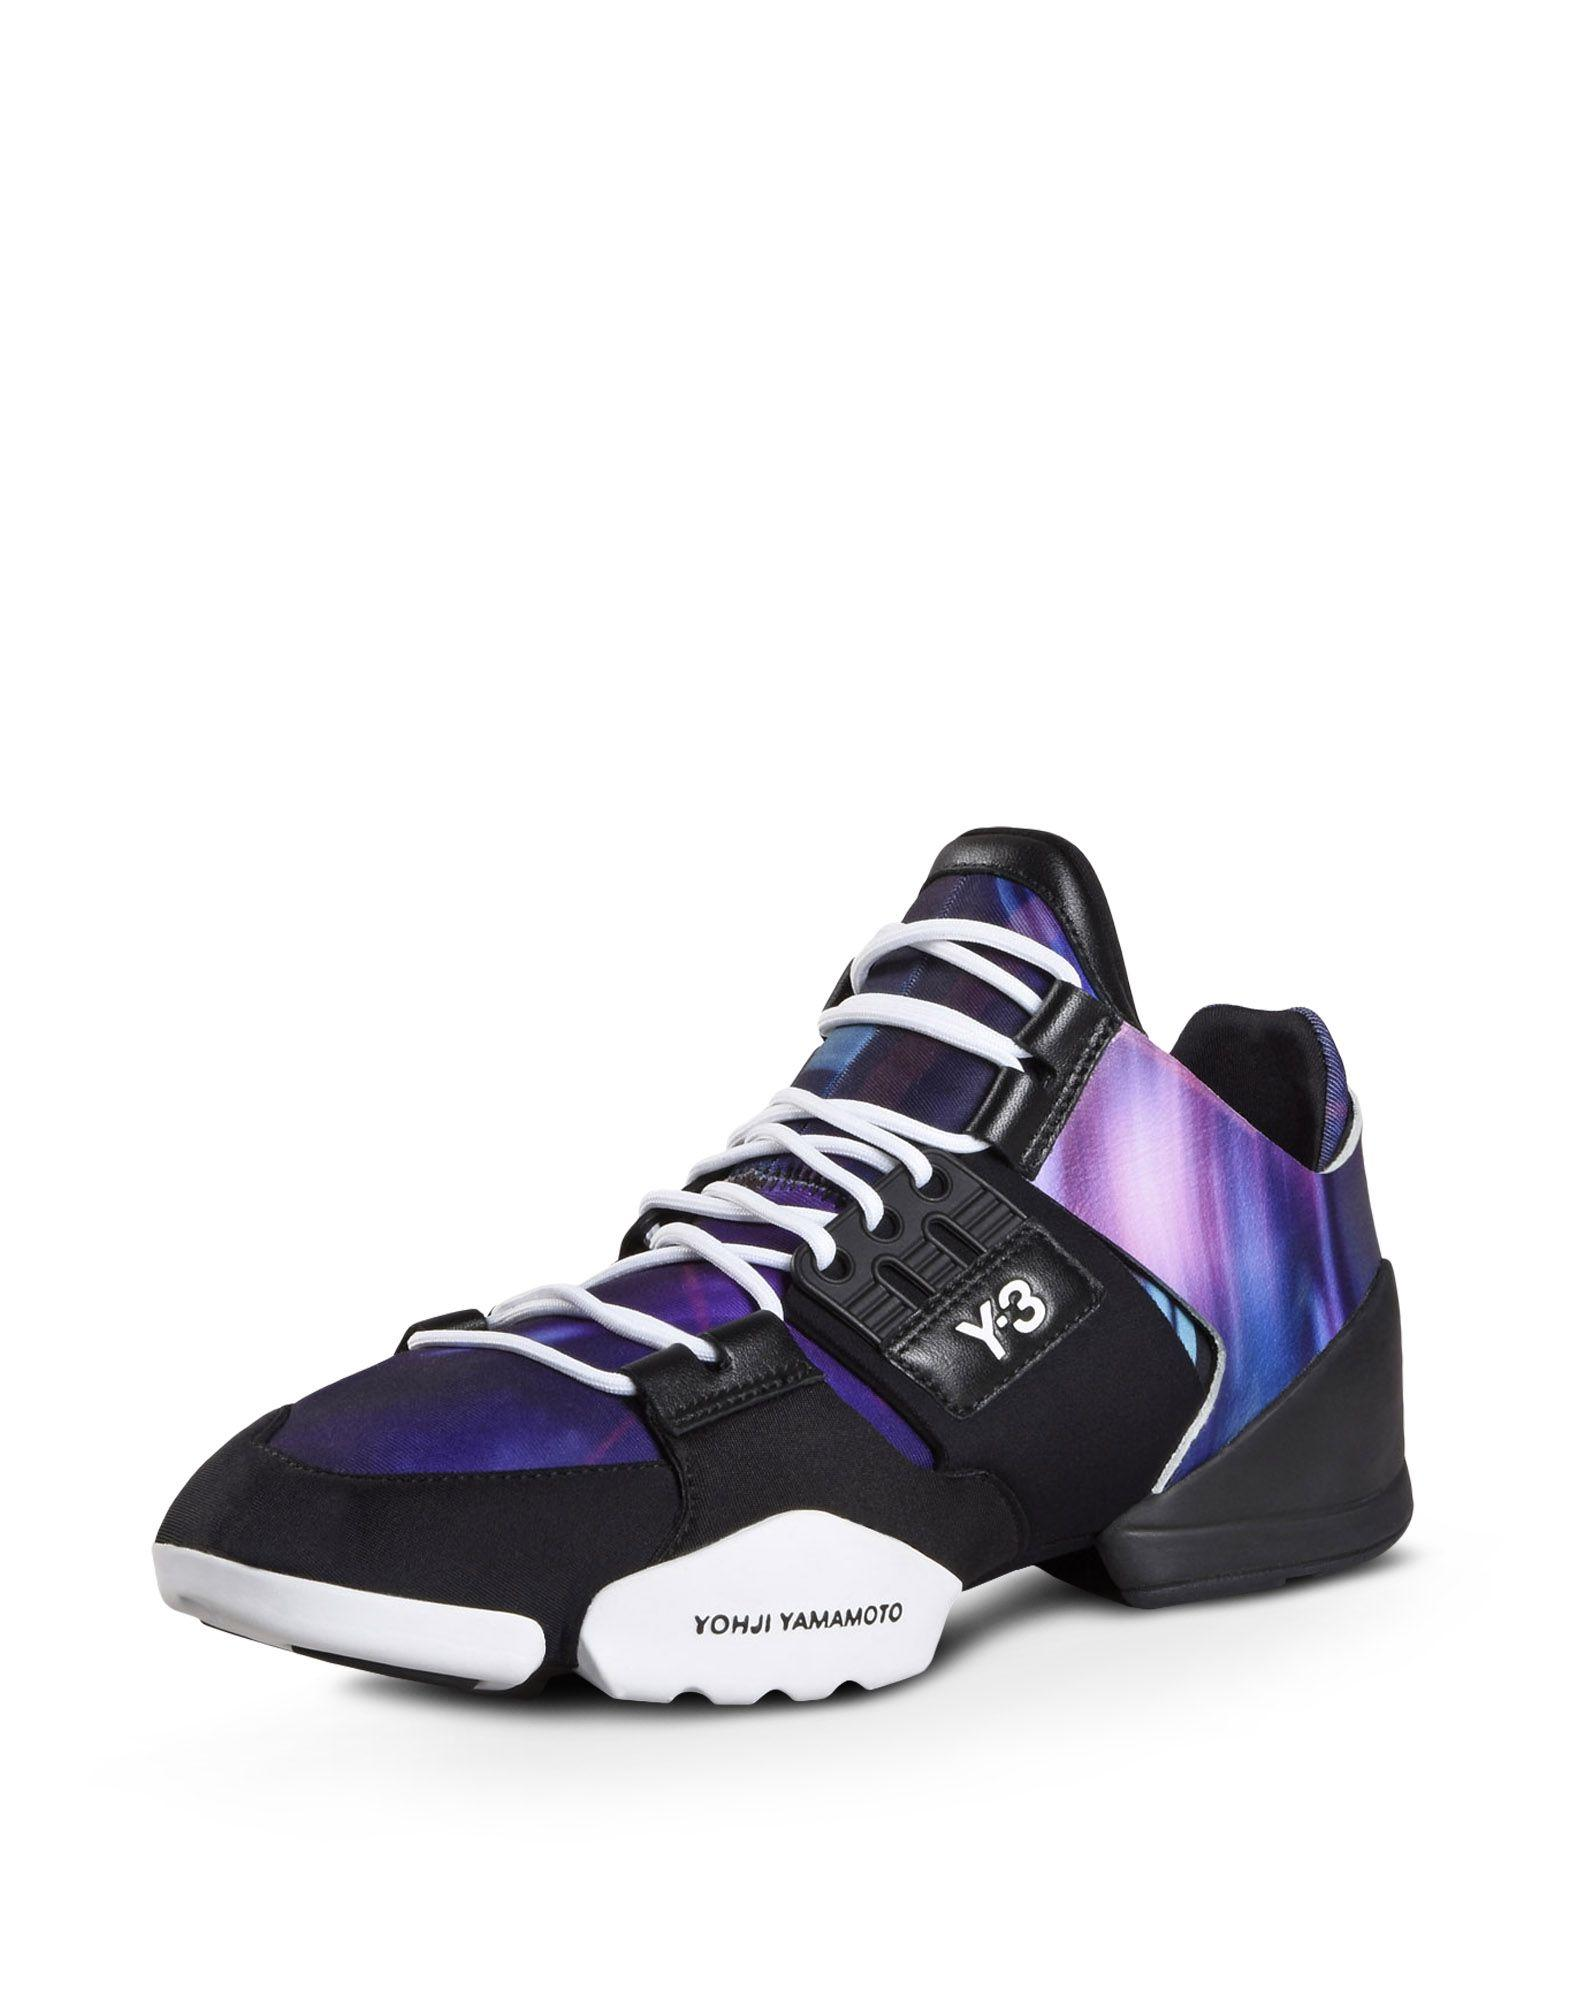 5bedd994330fe Y-3 Kanja Chunky Sneakers In Continuum Core Black